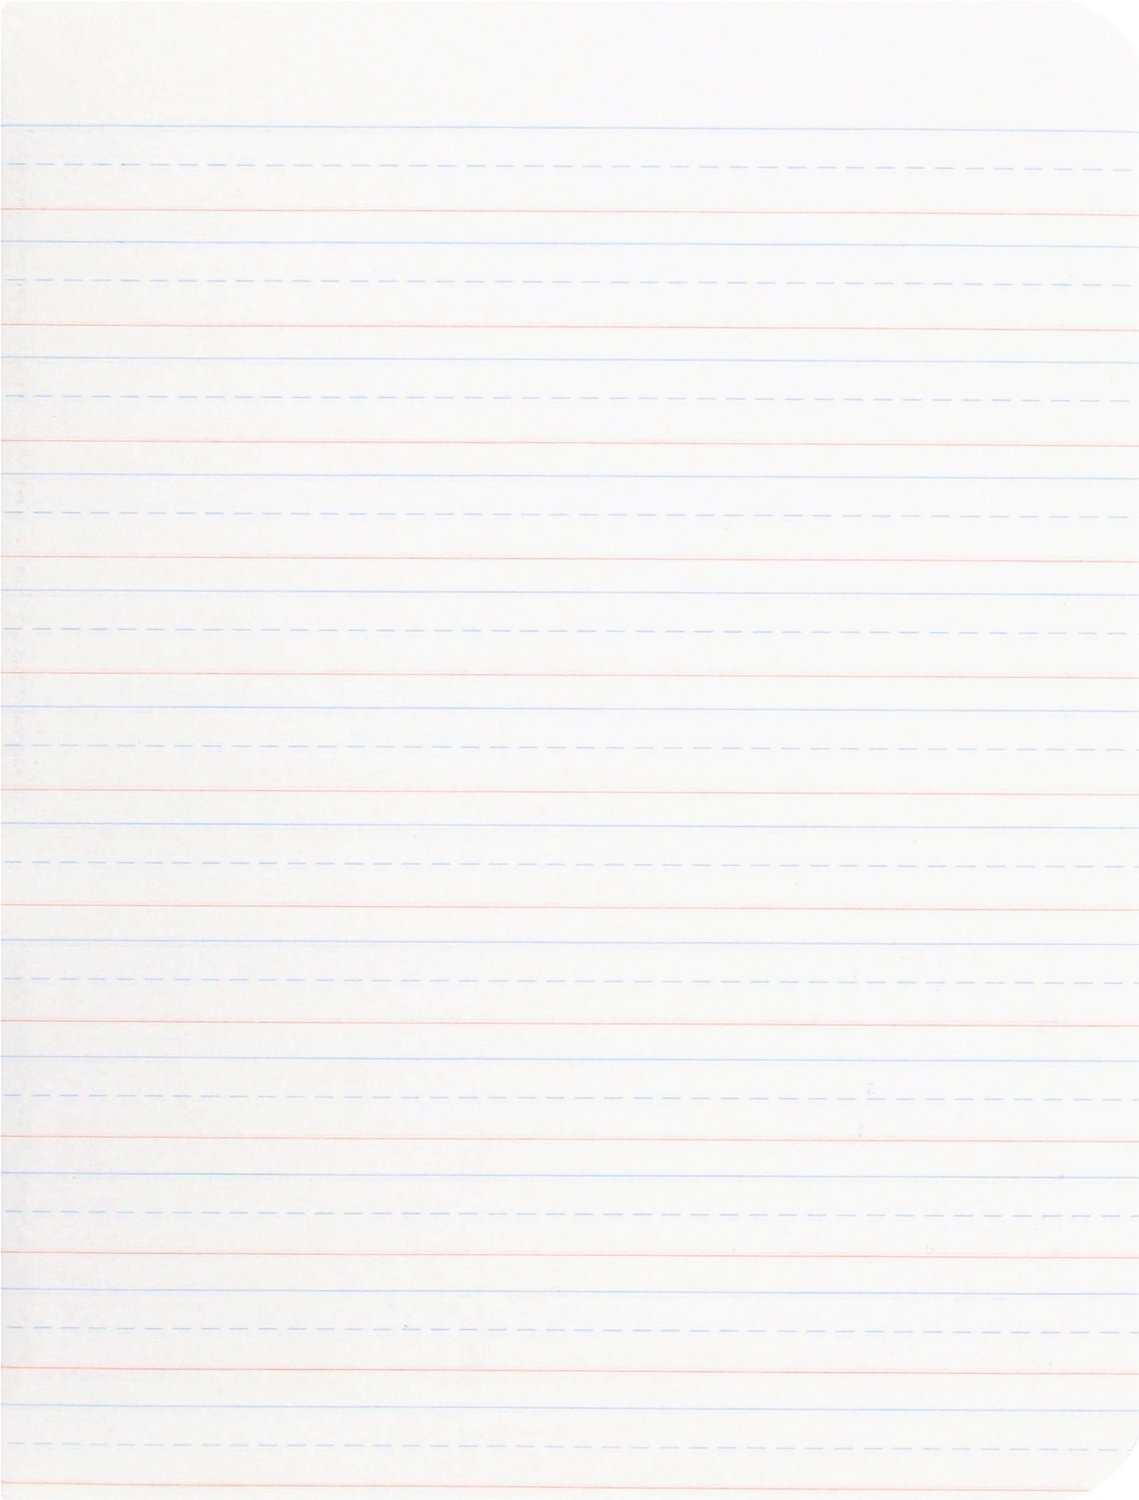 Mead Primary Composition Book, Ruled, 100 Sheets/200 Pages (09902), 6 Notebooks